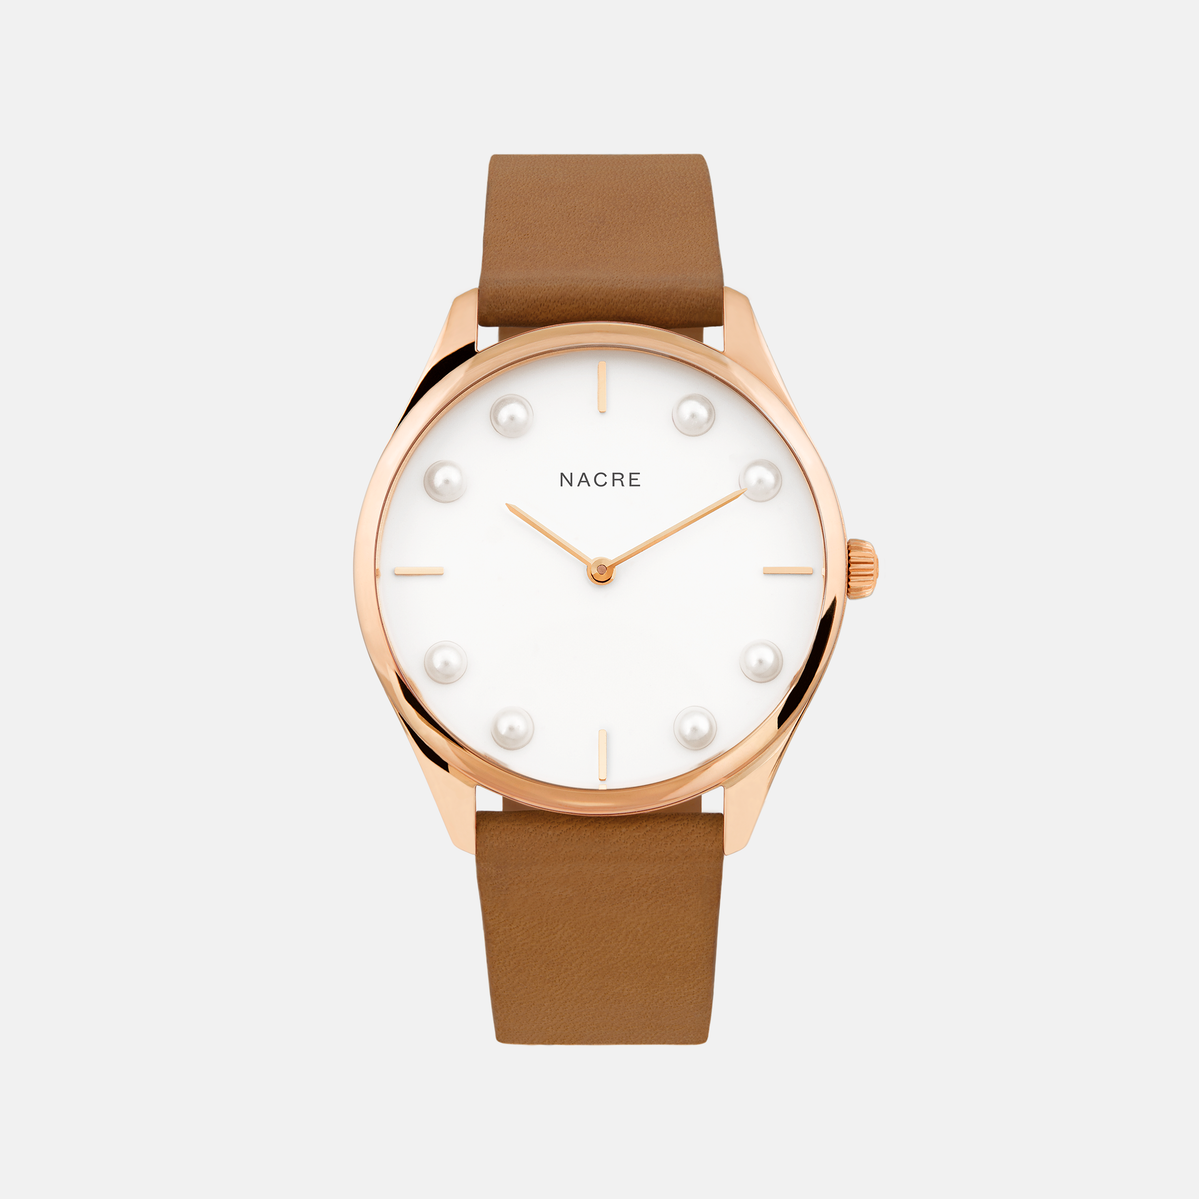 Lune 8 - Rose Gold and White - Black Leather